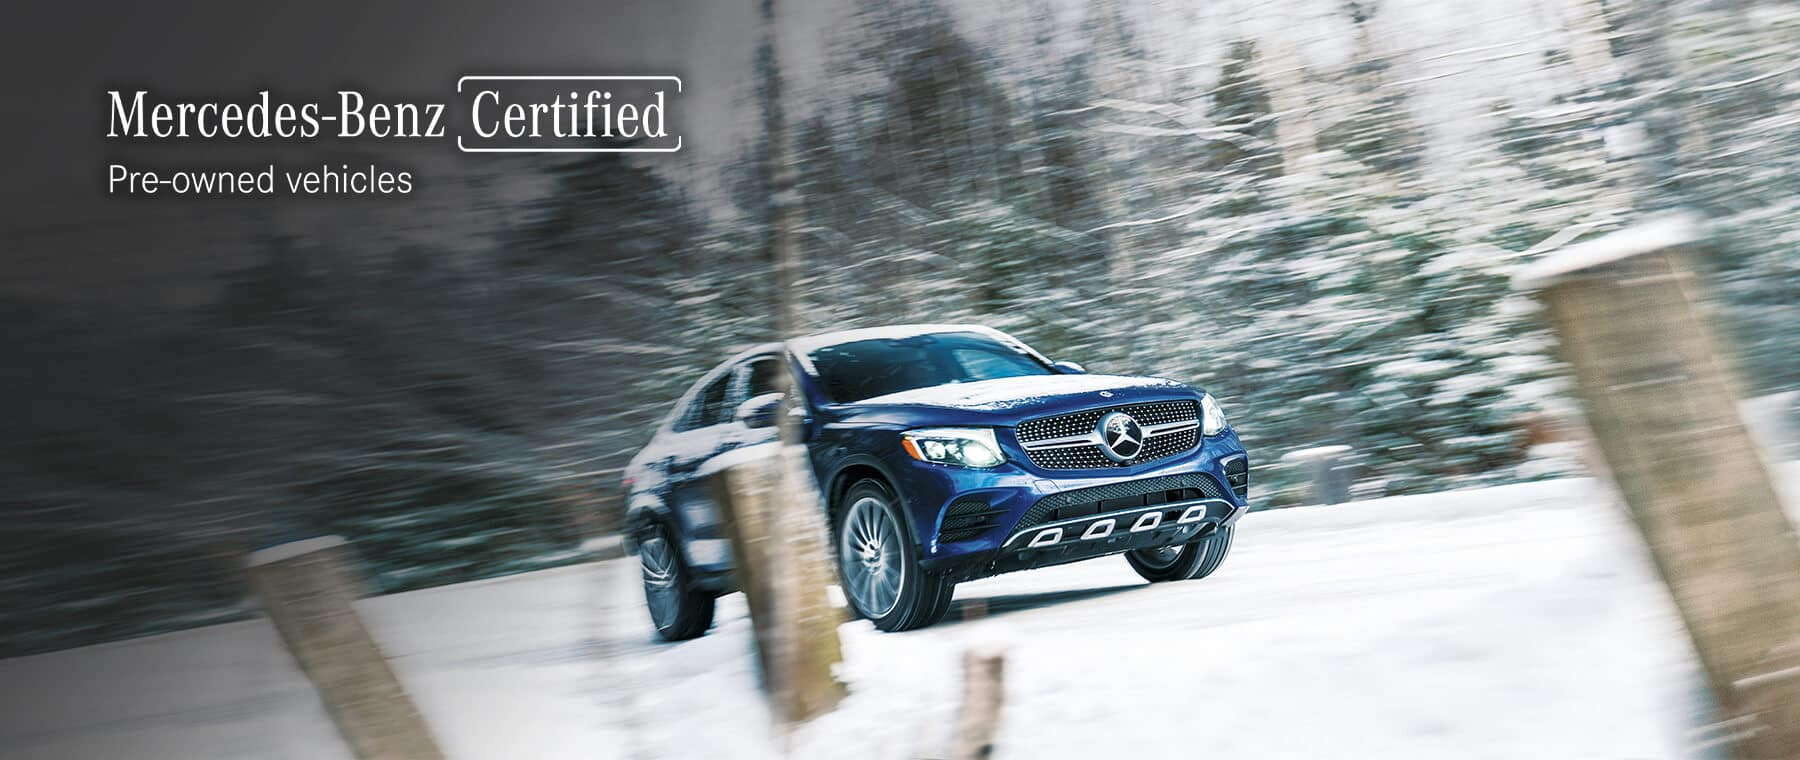 Mercedes-Benz Burlington Certified Pre-Owned Offers